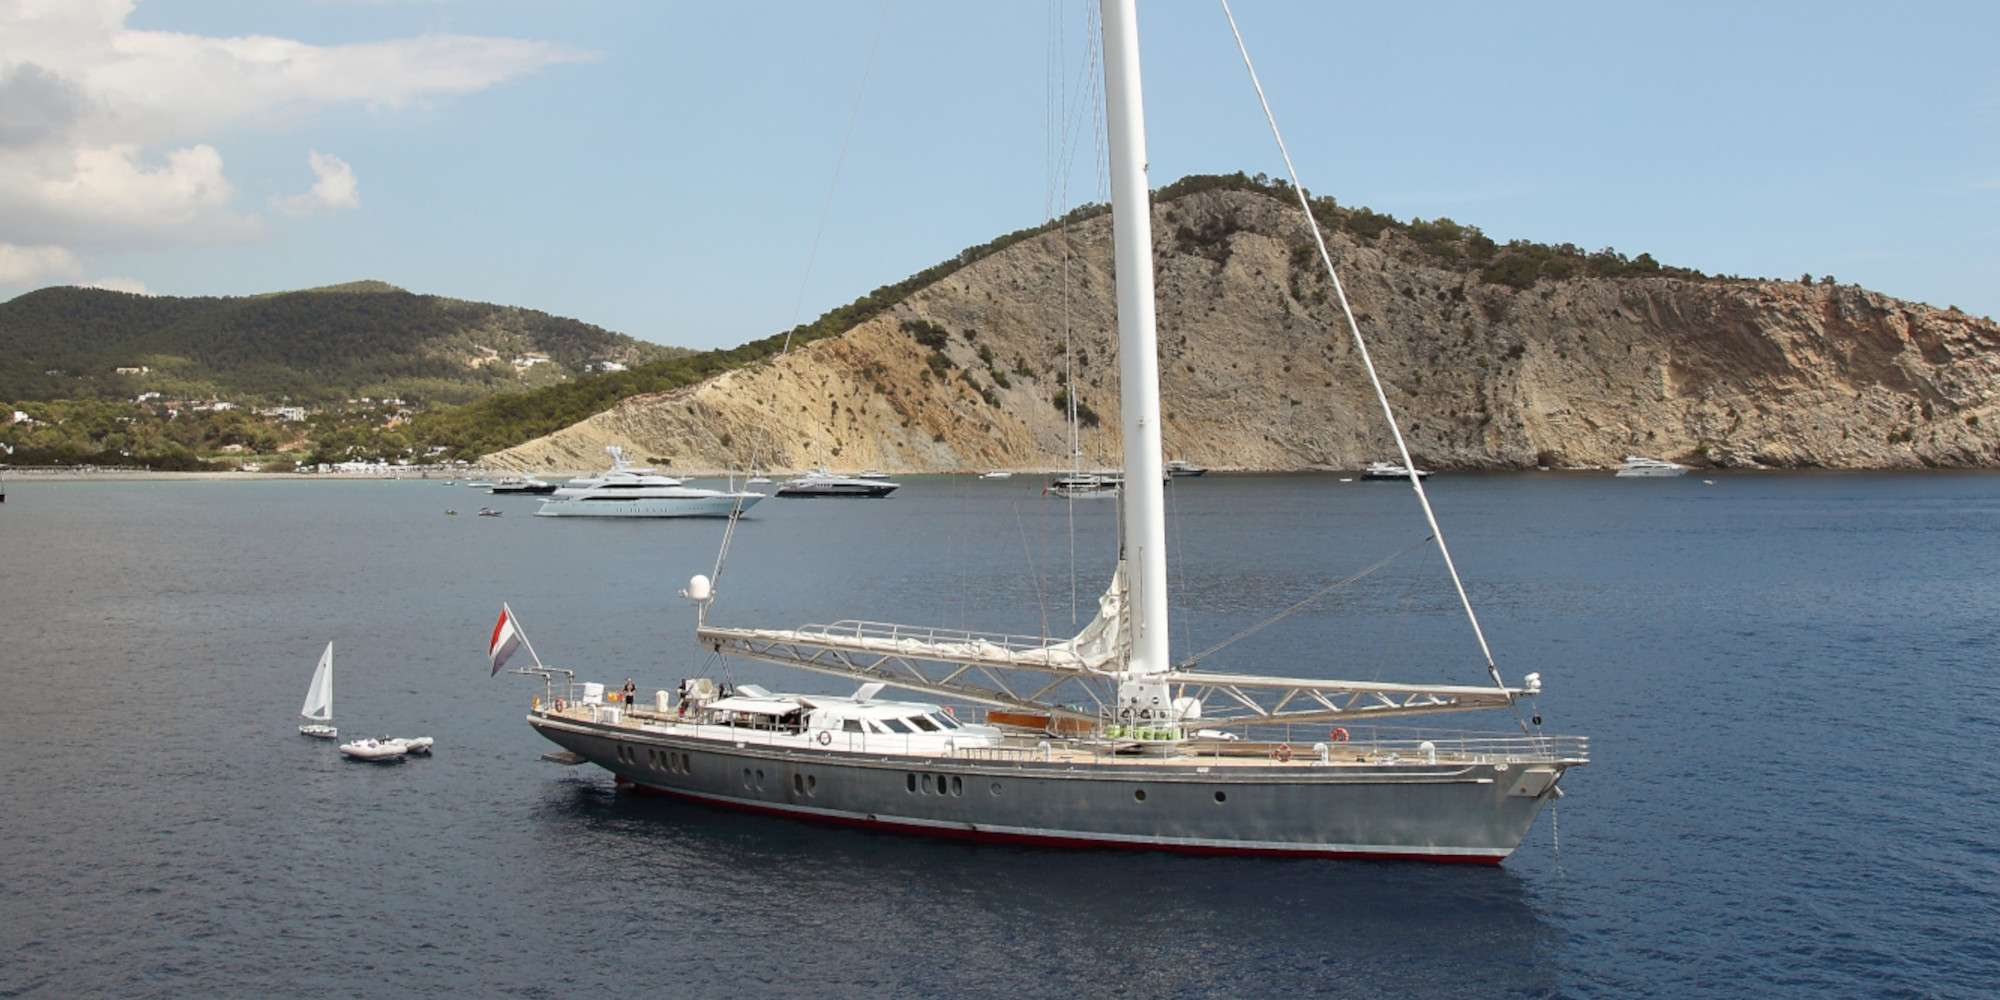 Charter with DWINGER on compassyachtcharters.com